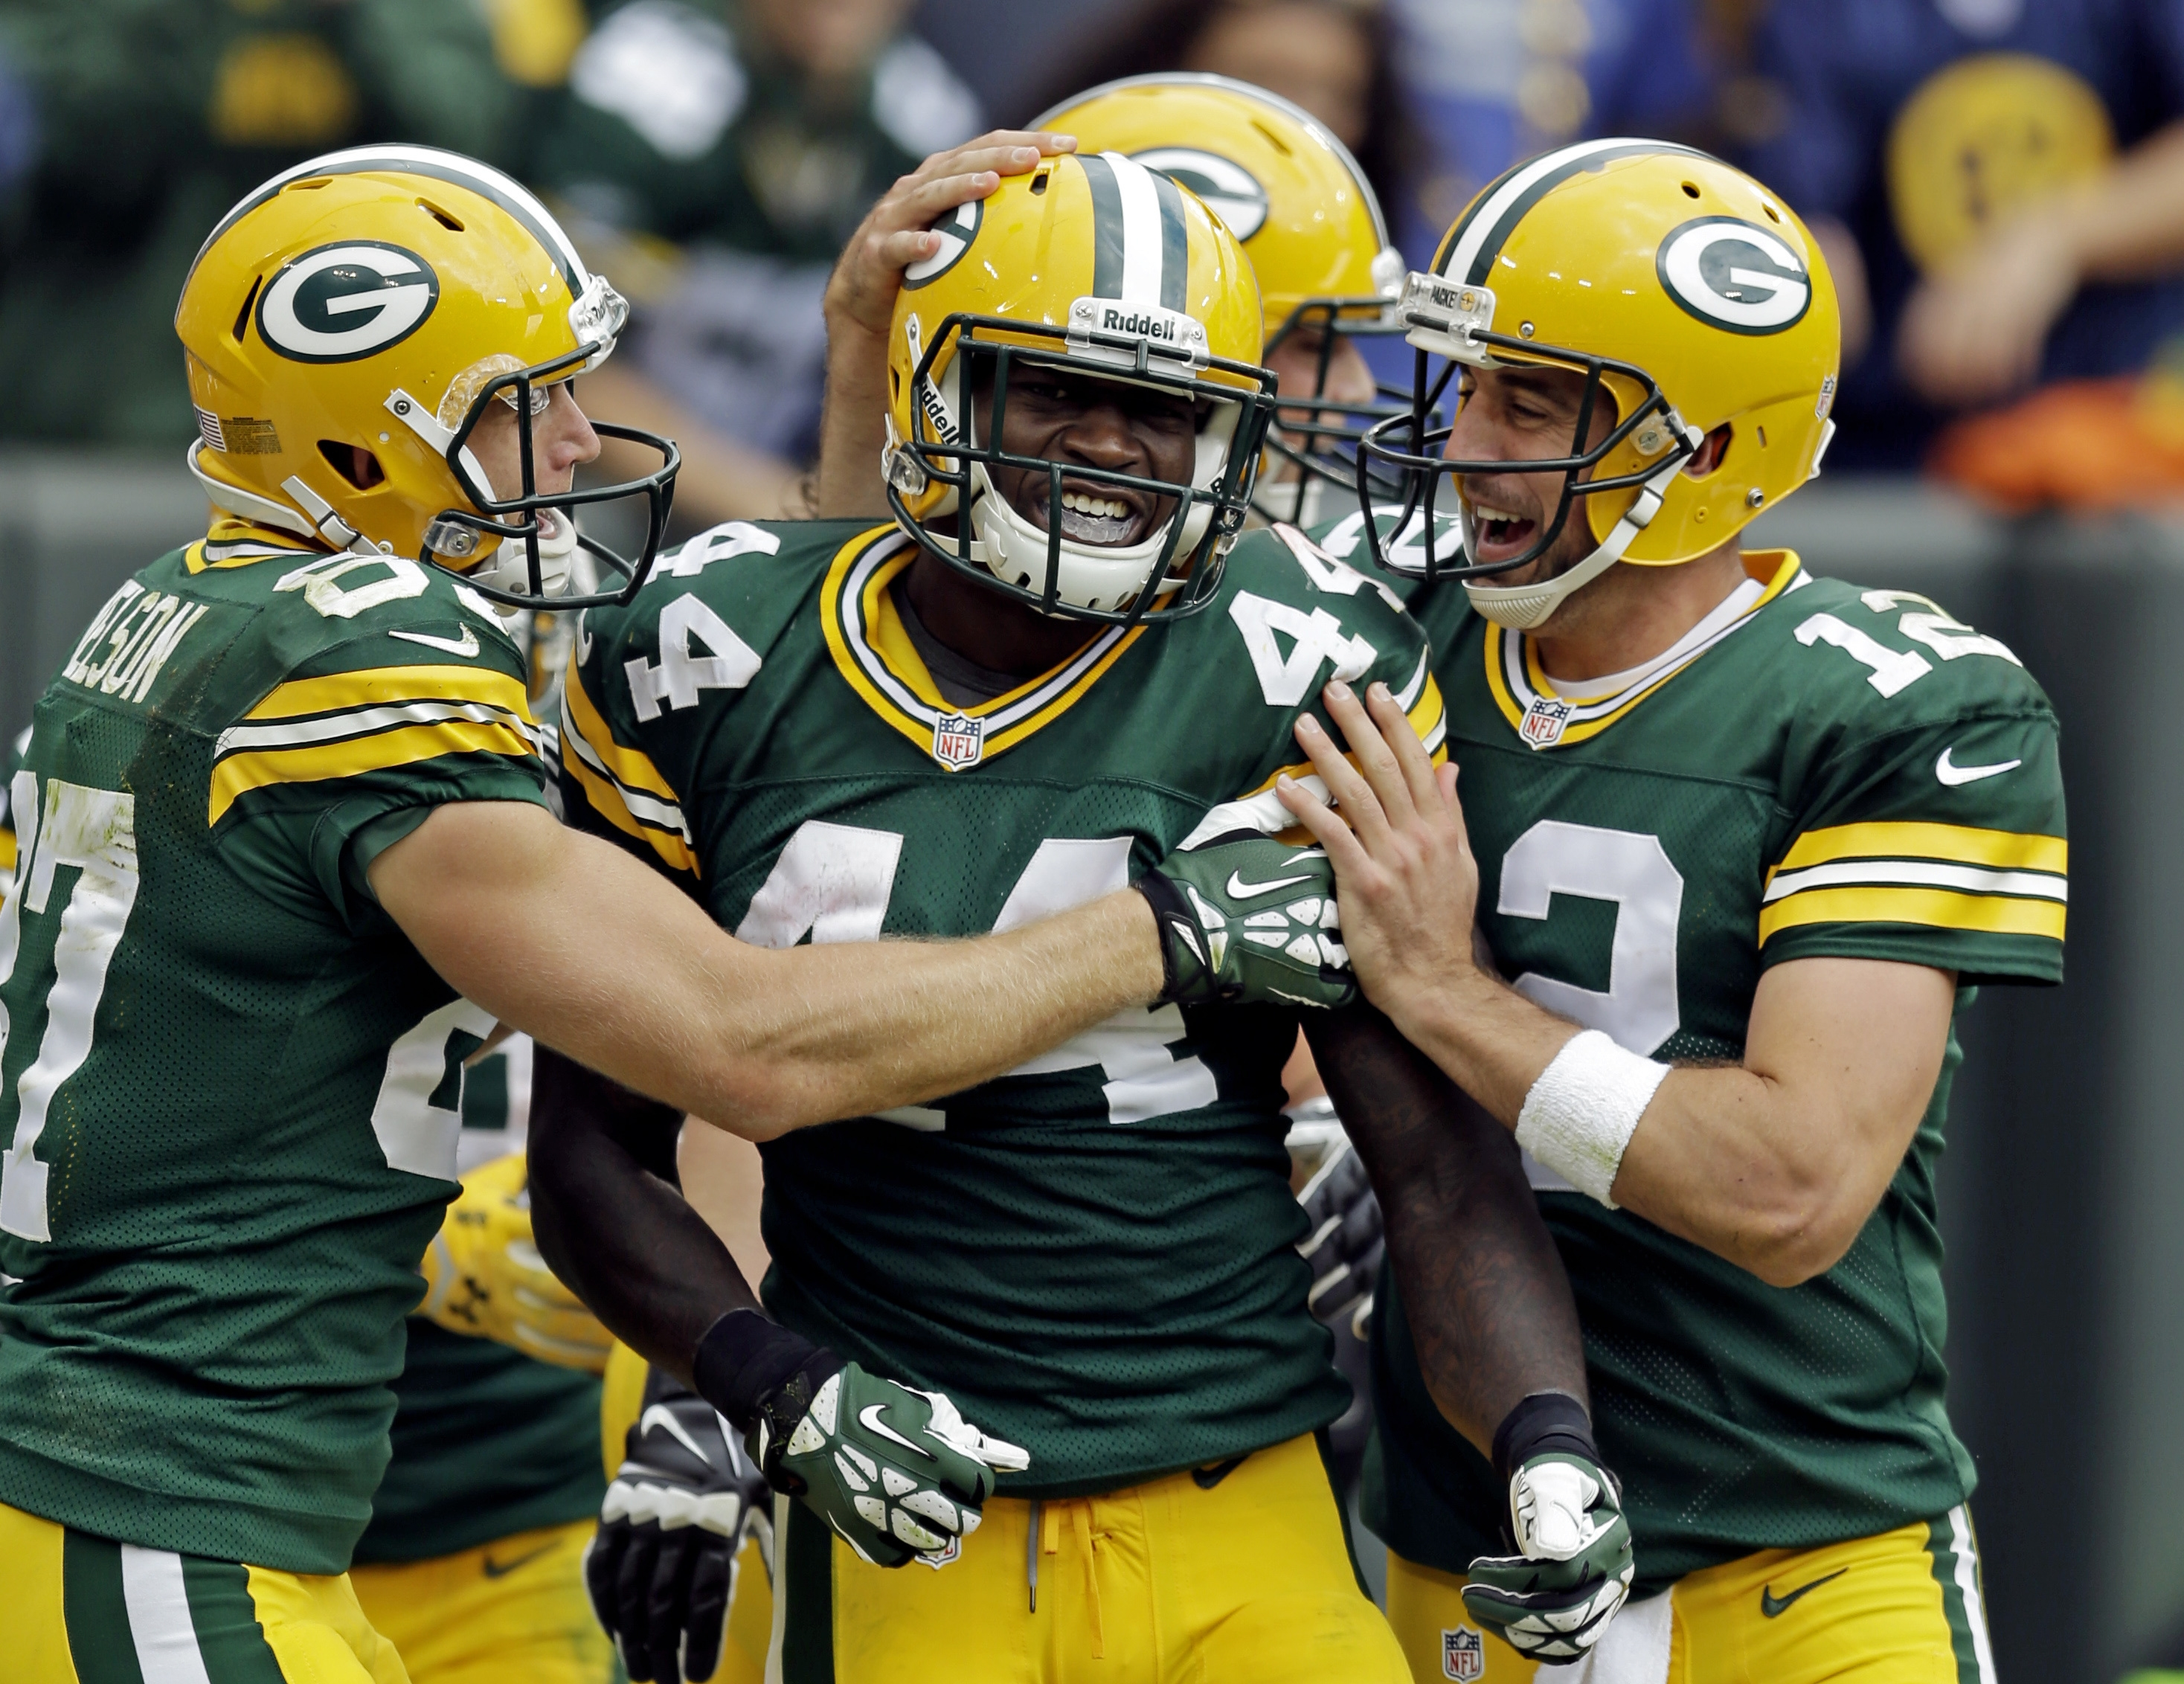 James Starks (44) earned another start with Green Bay after a strong game against Washington.